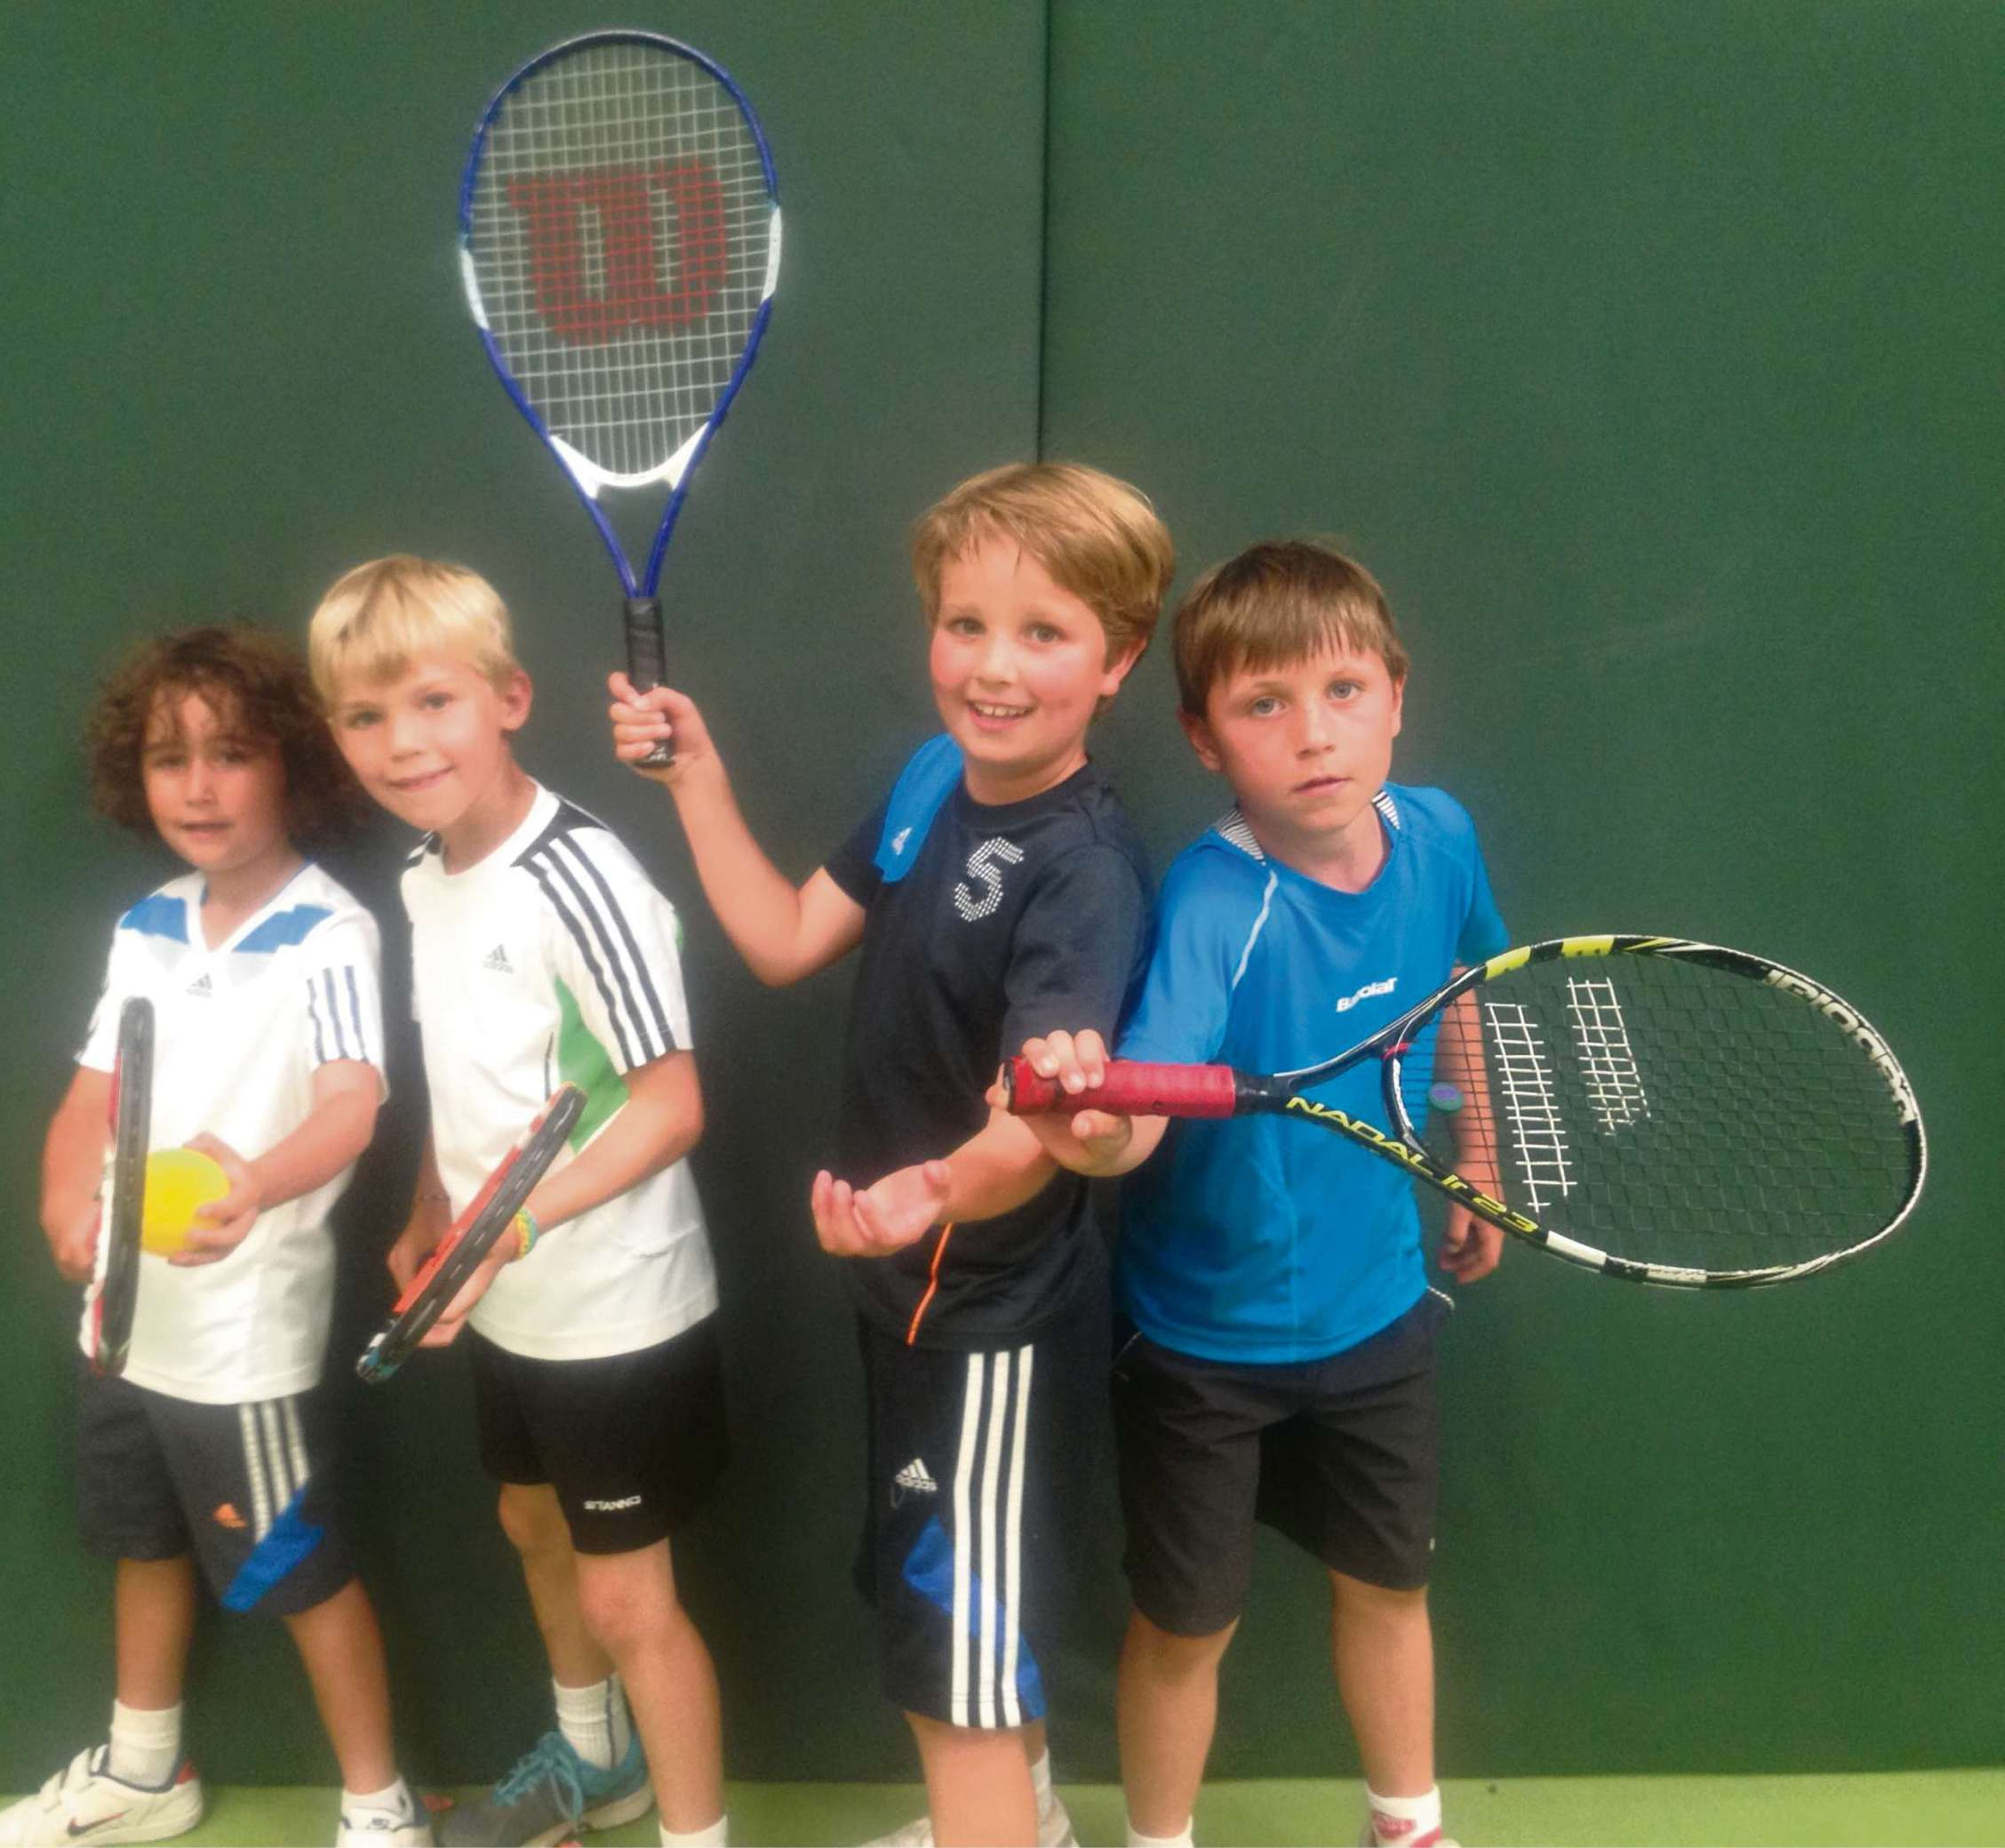 WINNING TEAM: The boys' team from Penarth's Evenlode Primary School - Harry Davies, Daniel Ingram, Sebastian Griffiths and Sebb Forton - which won the mini reds section of a tennis tournament at the David Lloyd Centre, Cardiff.